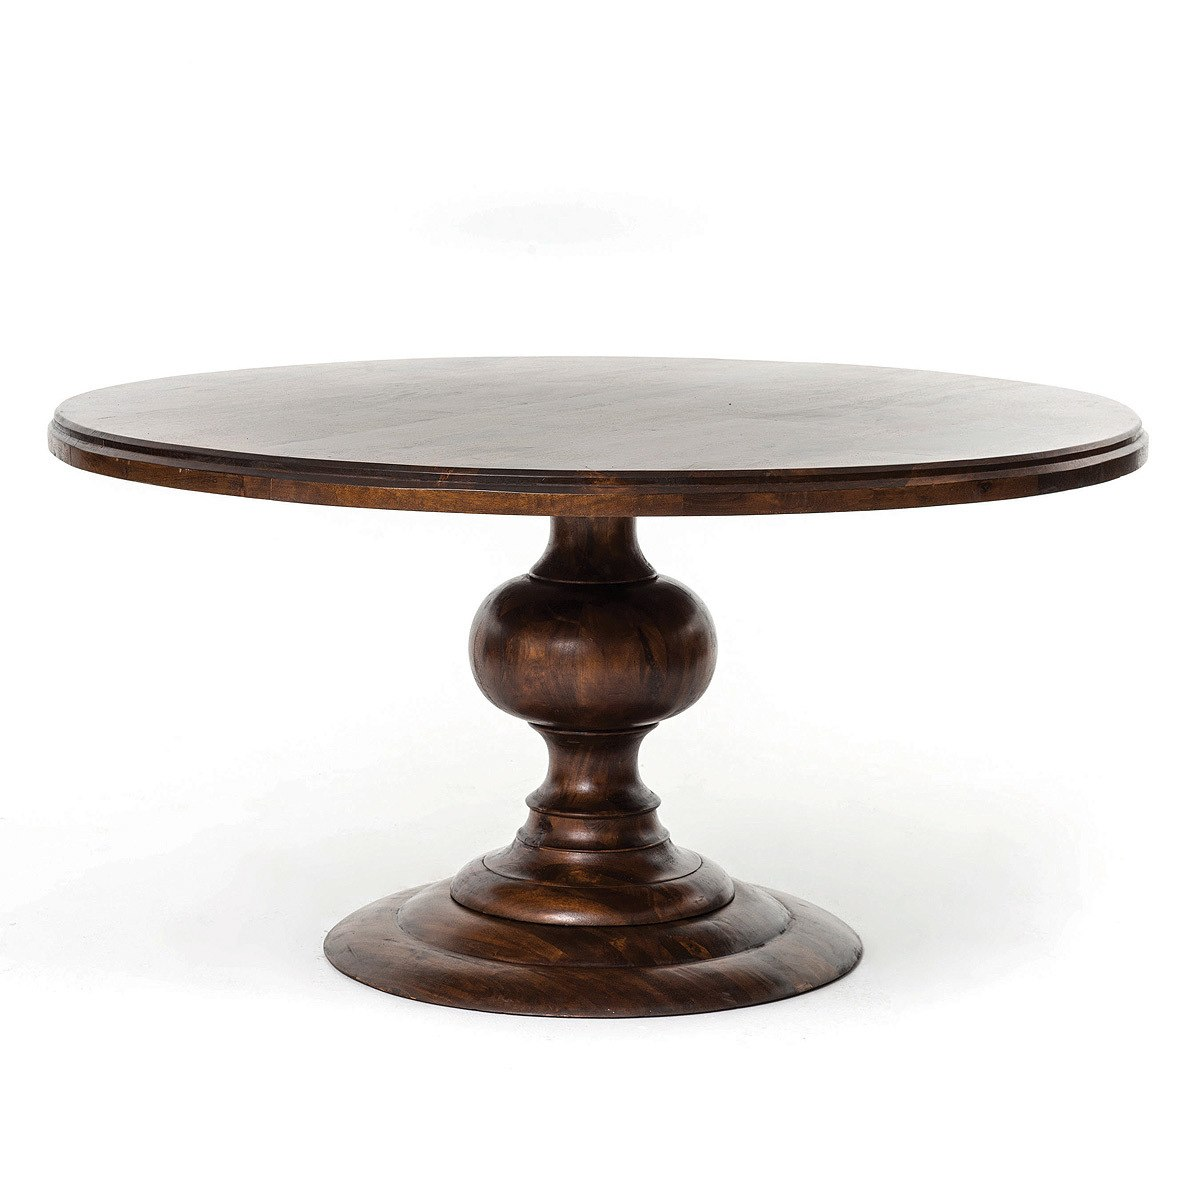 Round Pedestal Dining Table 60 NSWZCLK